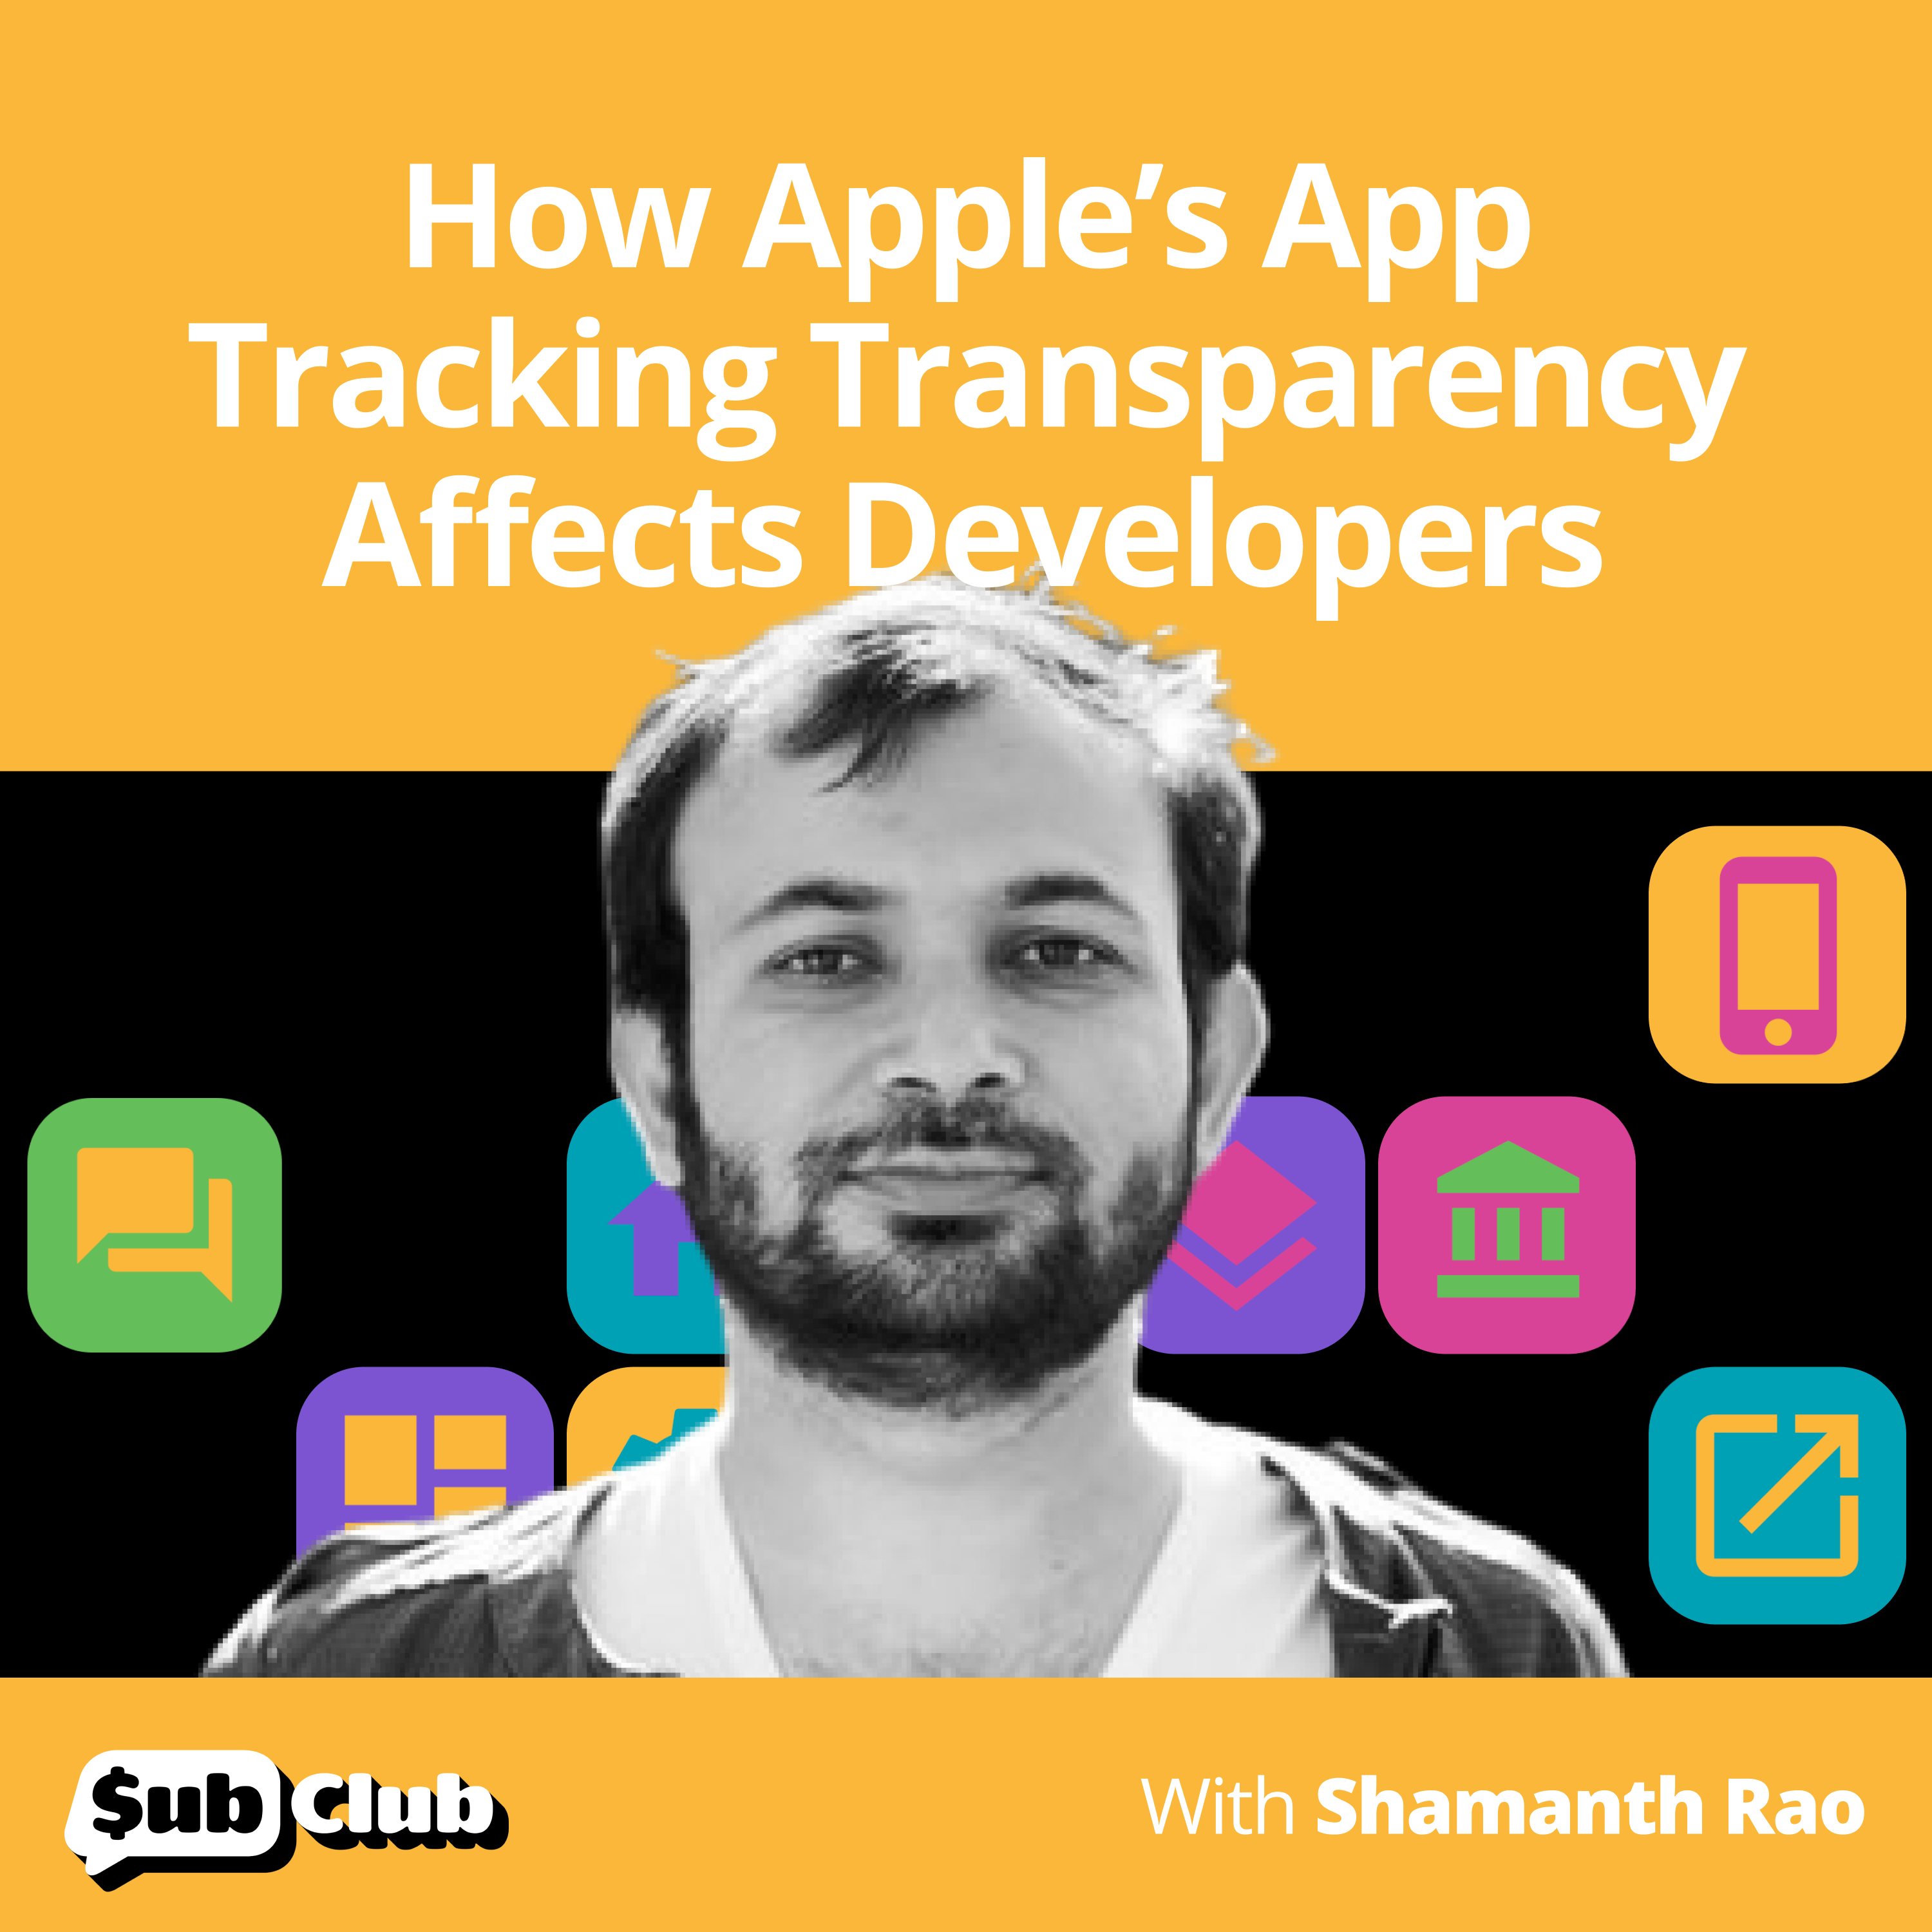 Shamanth Rao, RocketShip HQ - How Apple's App Tracking Transparency Affects Developers